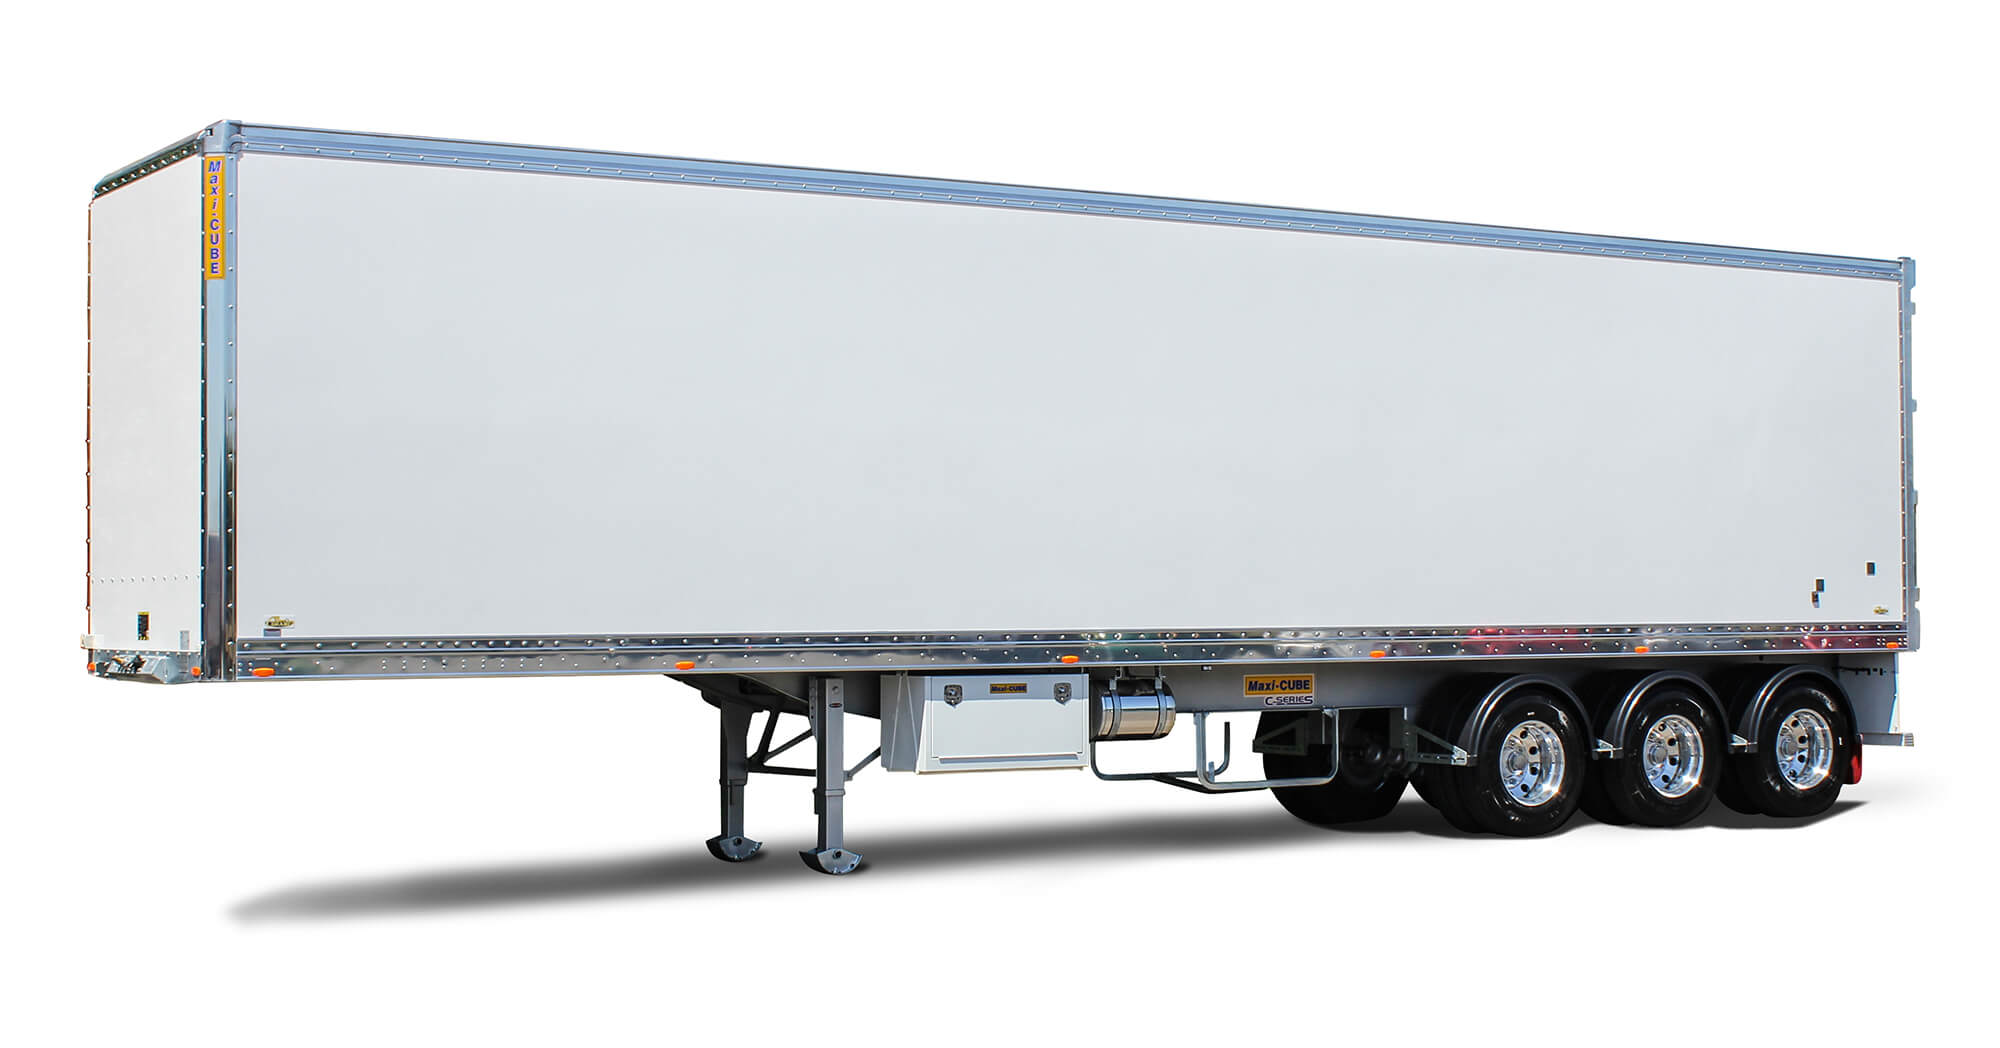 Dry freight truck rental